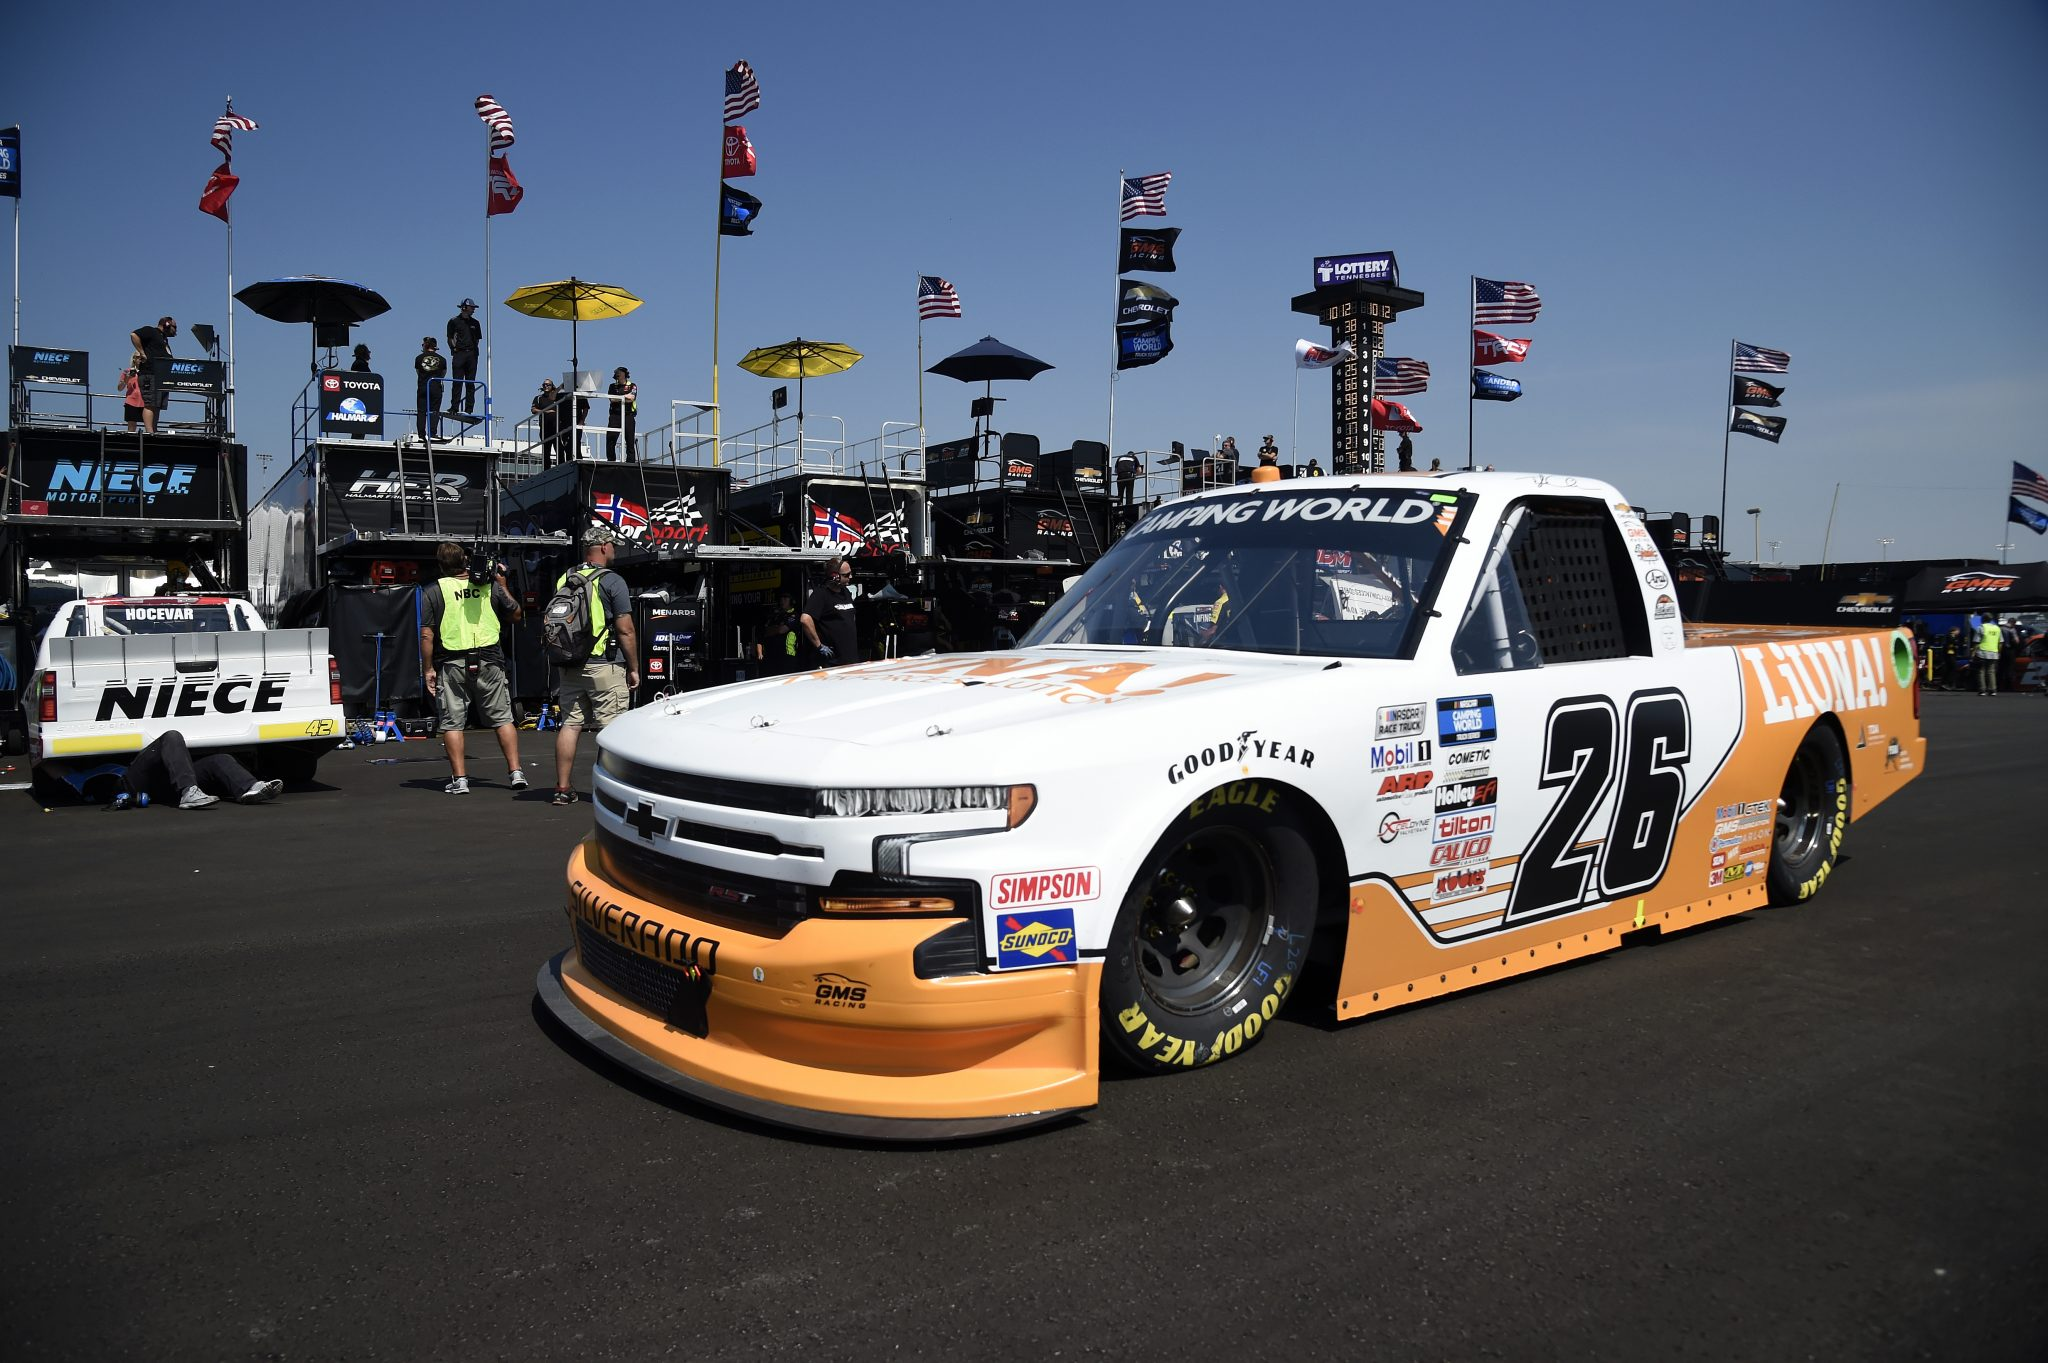 LEBANON, TENNESSEE - JUNE 18: Tyler Ankrum, driver of the #26 LiUNA! Chevrolet, drives in the garage area during practice for the NASCAR Camping World Truck Series Rackley Roofing 200 at Nashville Superspeedway on June 18, 2021 in Lebanon, Tennessee. (Photo by Logan Riely/Getty Images) | Getty Images